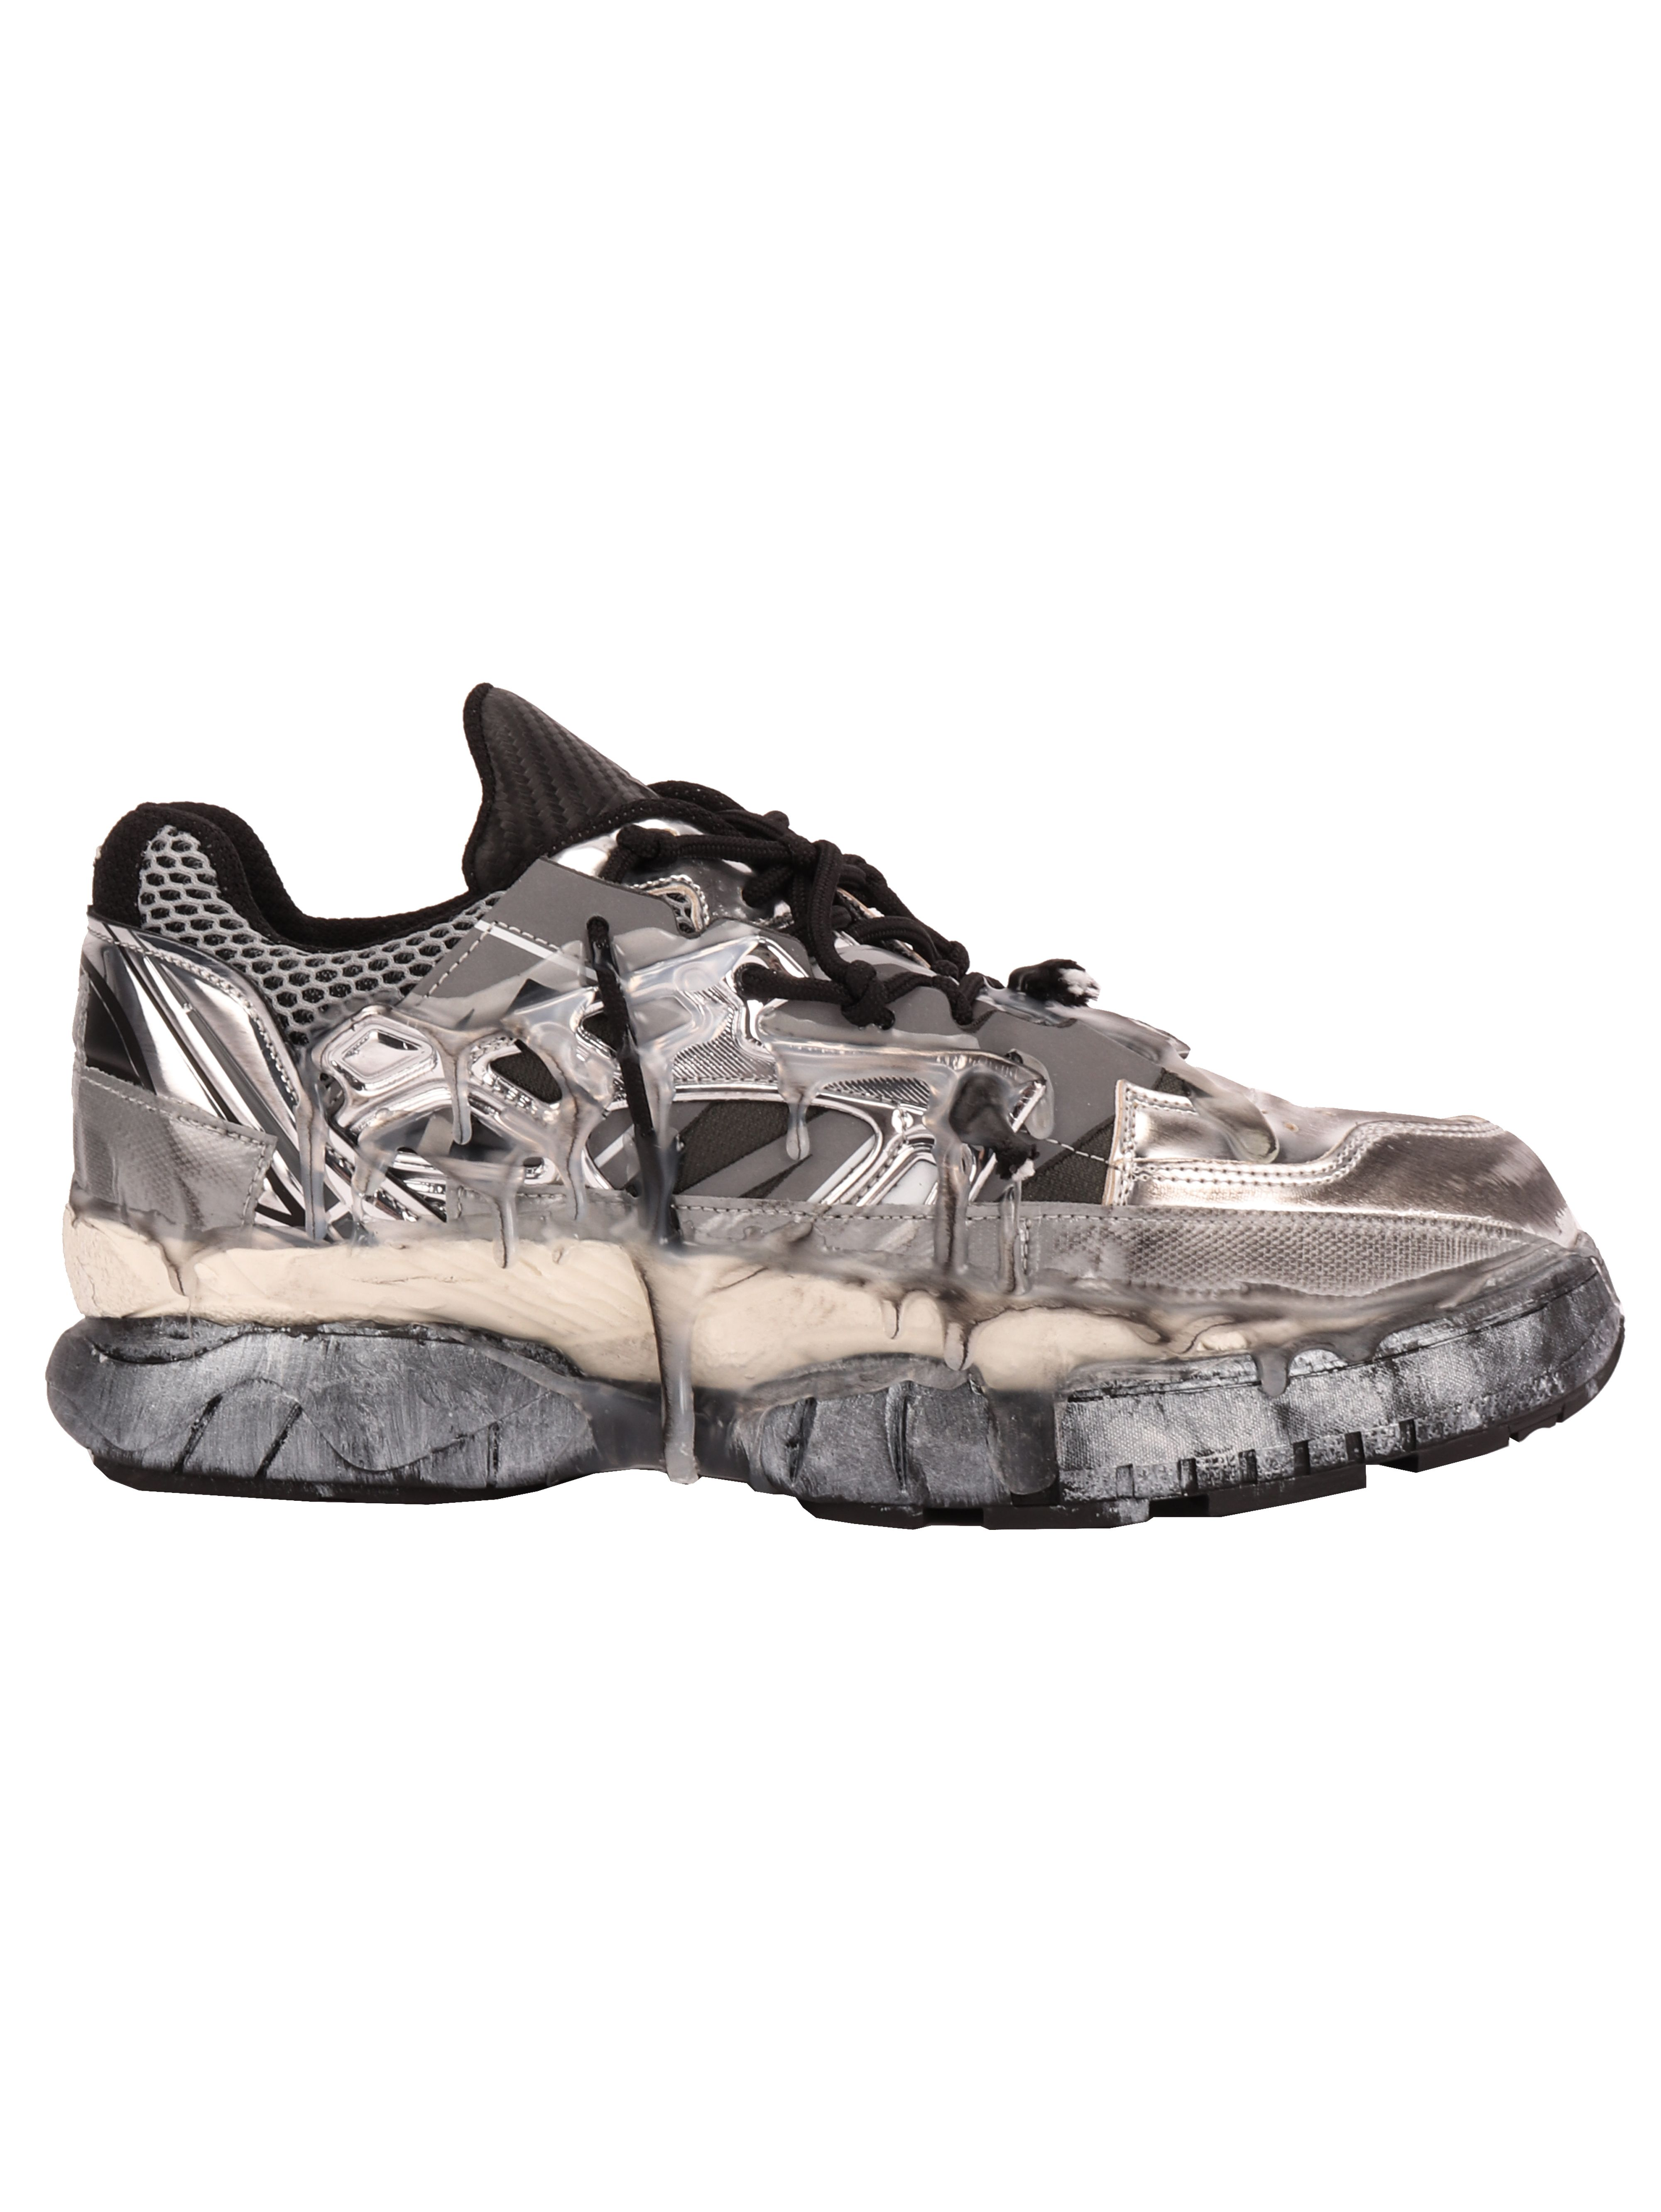 Maison Margiela Fusion Sneakers In Black And Silver